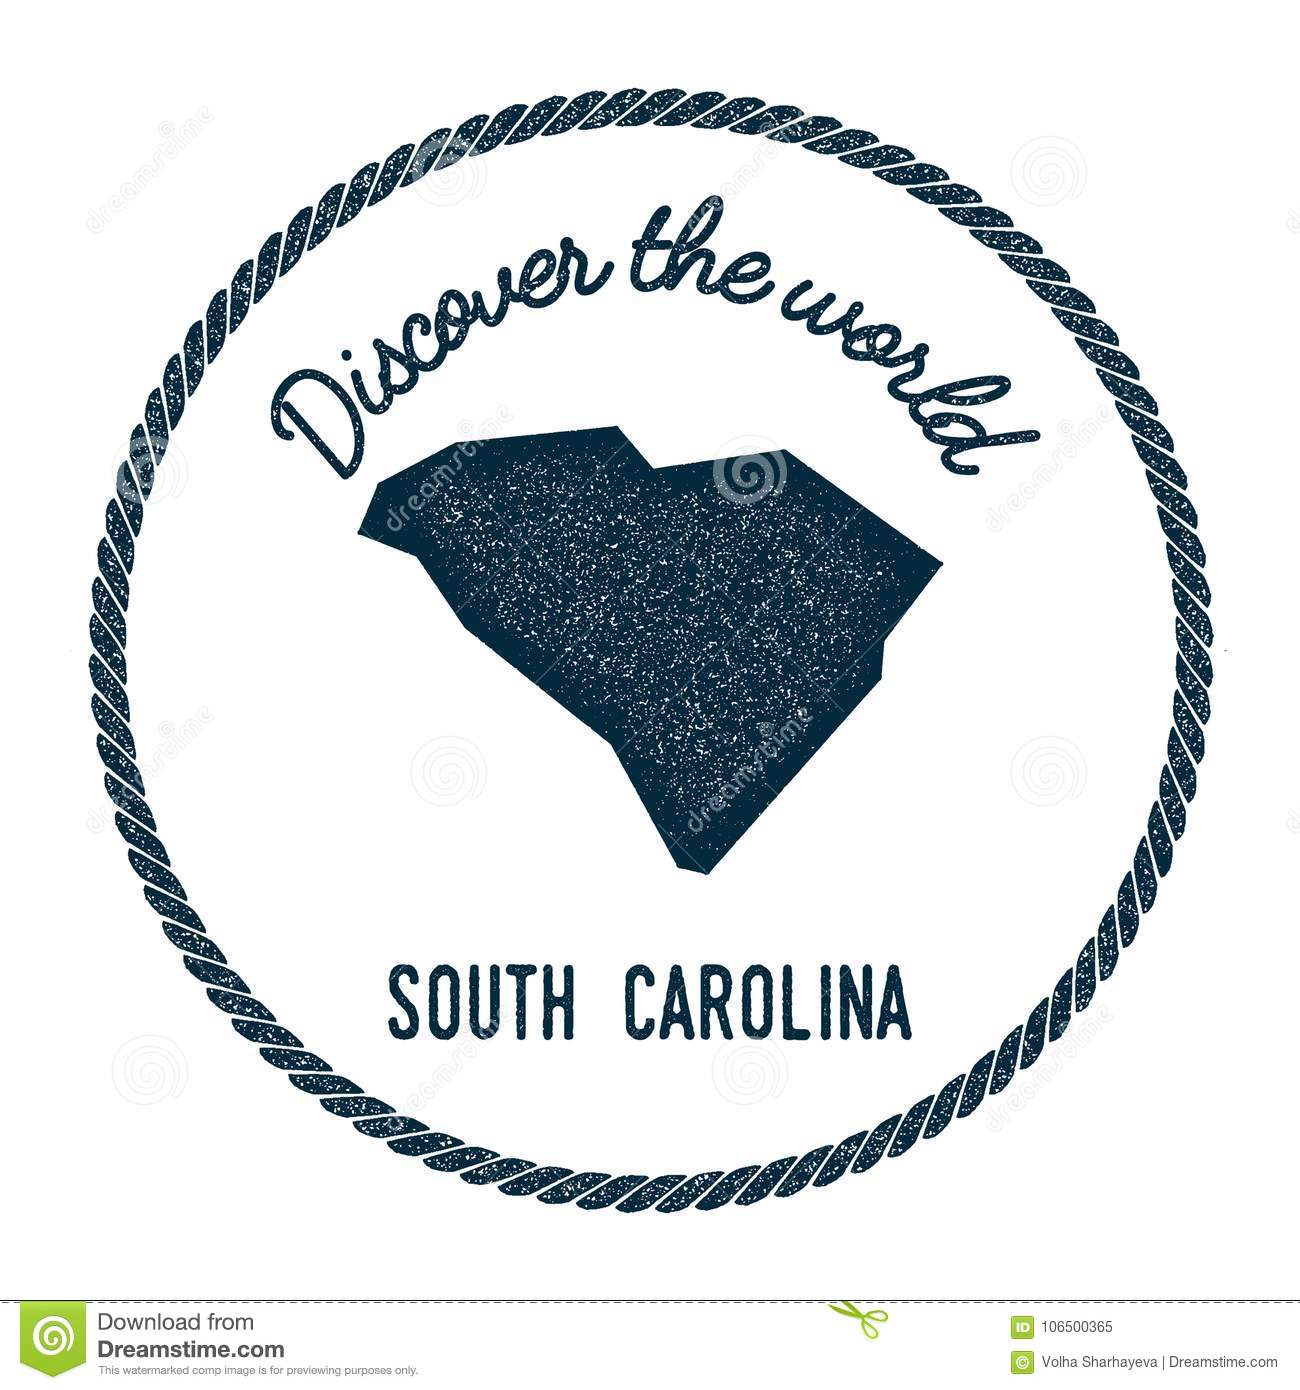 Vintage South Carolina Map.South Carolina Map In Vintage Discover The World Stock Vector